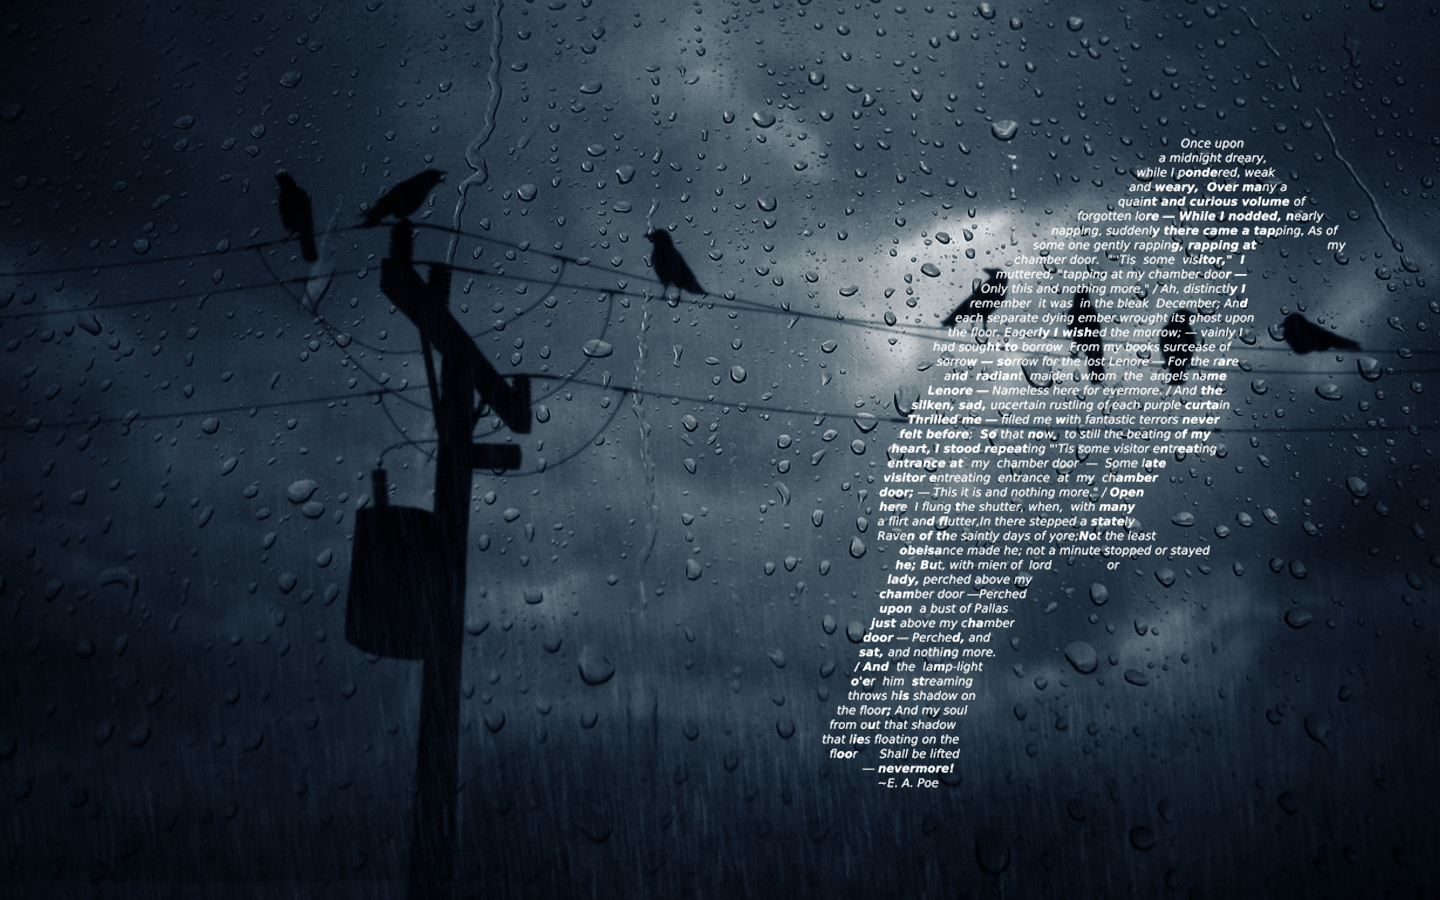 Edgar Allan Poe Quotes Wallpaper Raven Wallpaper And Background Image 1440x900 Id 456812